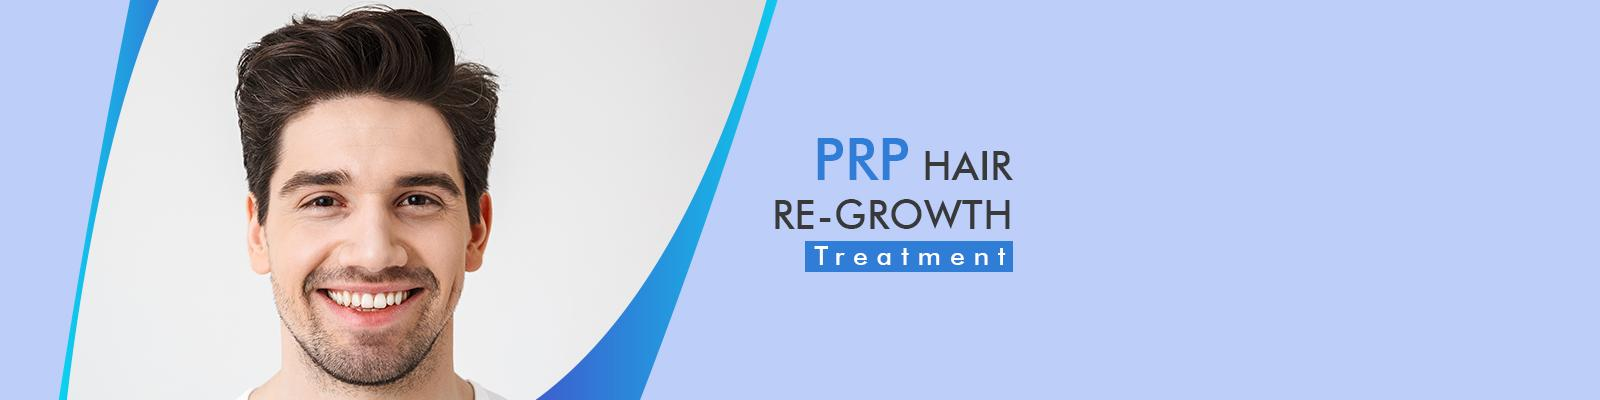 Prp Hair Loss Treatment & Plasma Hair Treatment